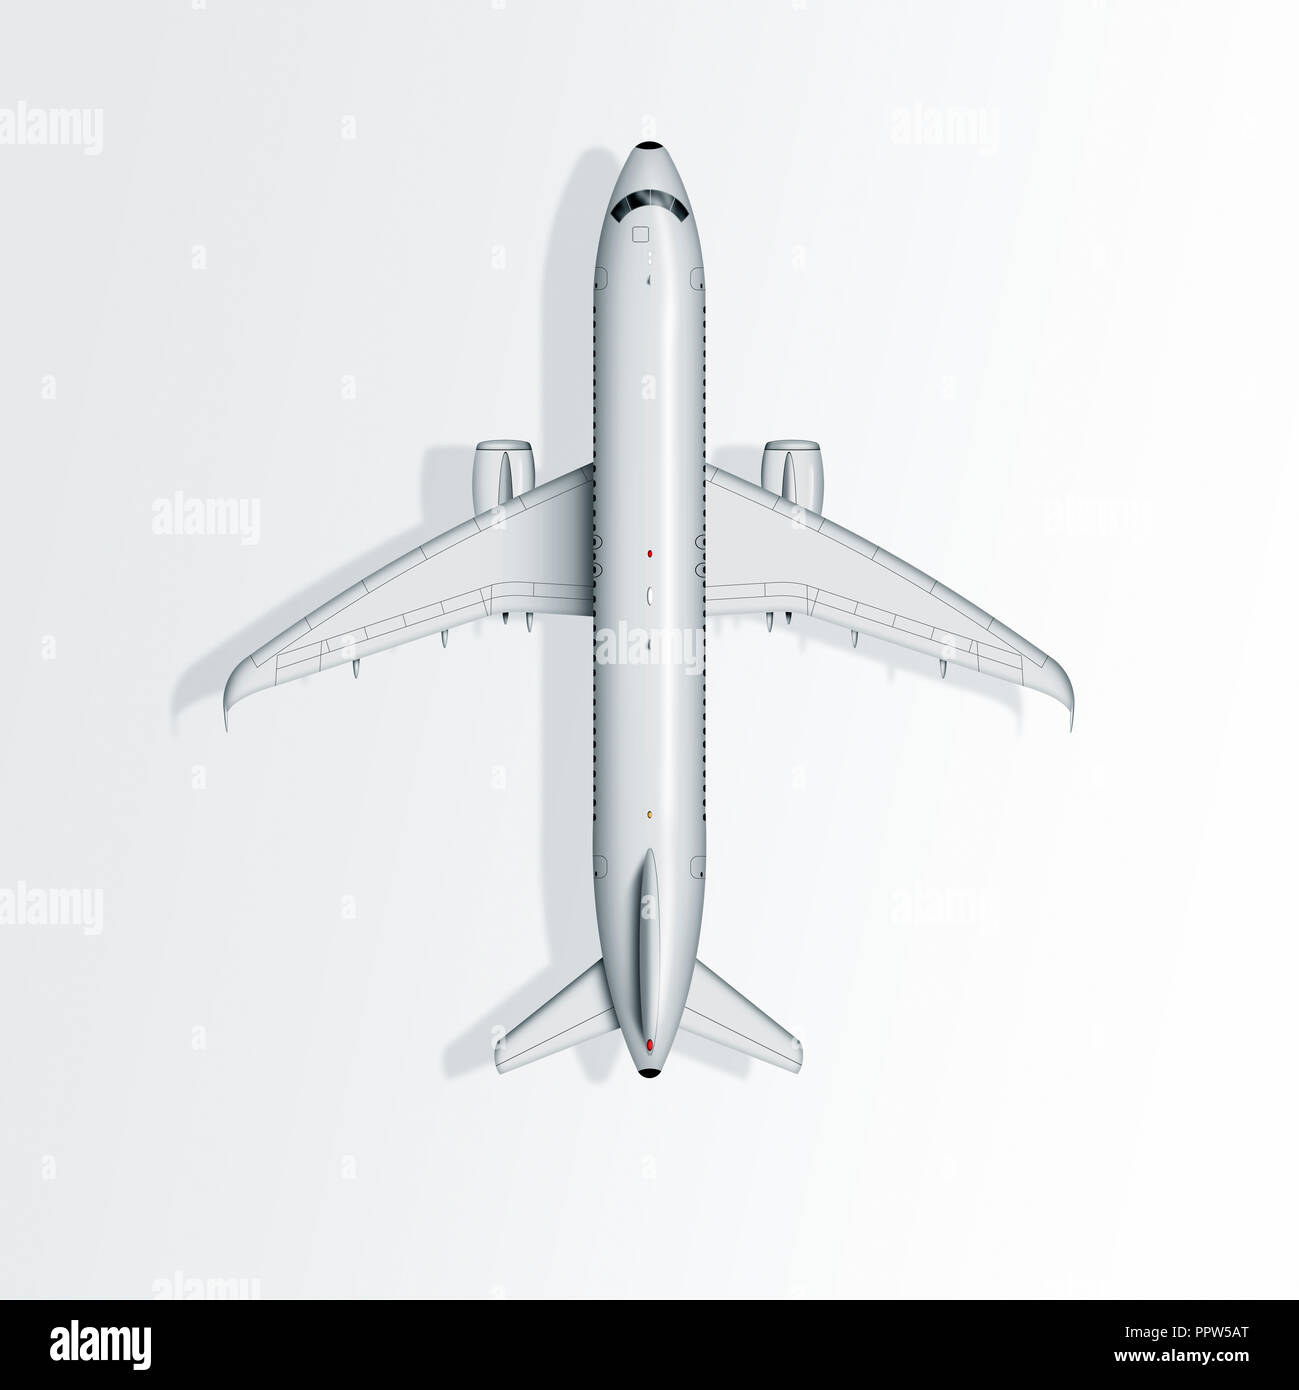 Airplane Airbus A320, white aircraft, Stock Photo